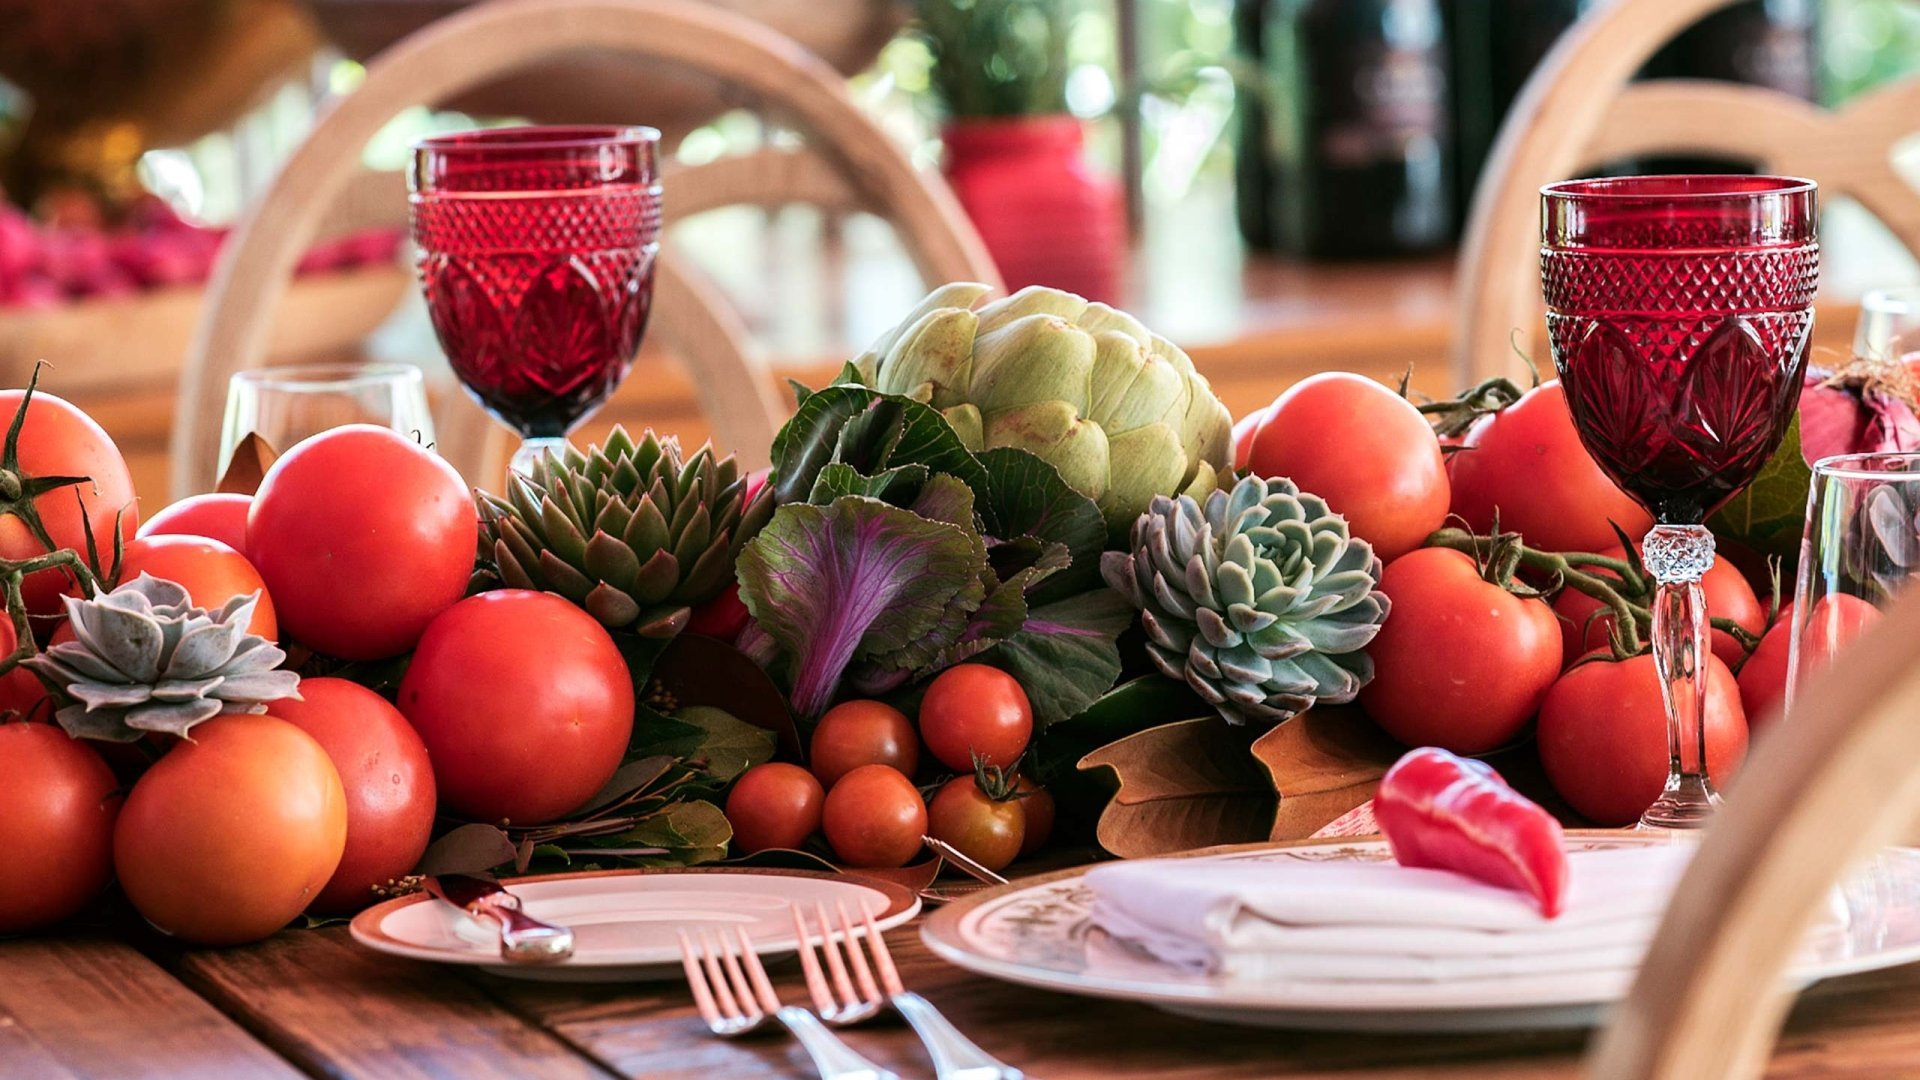 table setting with tomatoes and artichokes